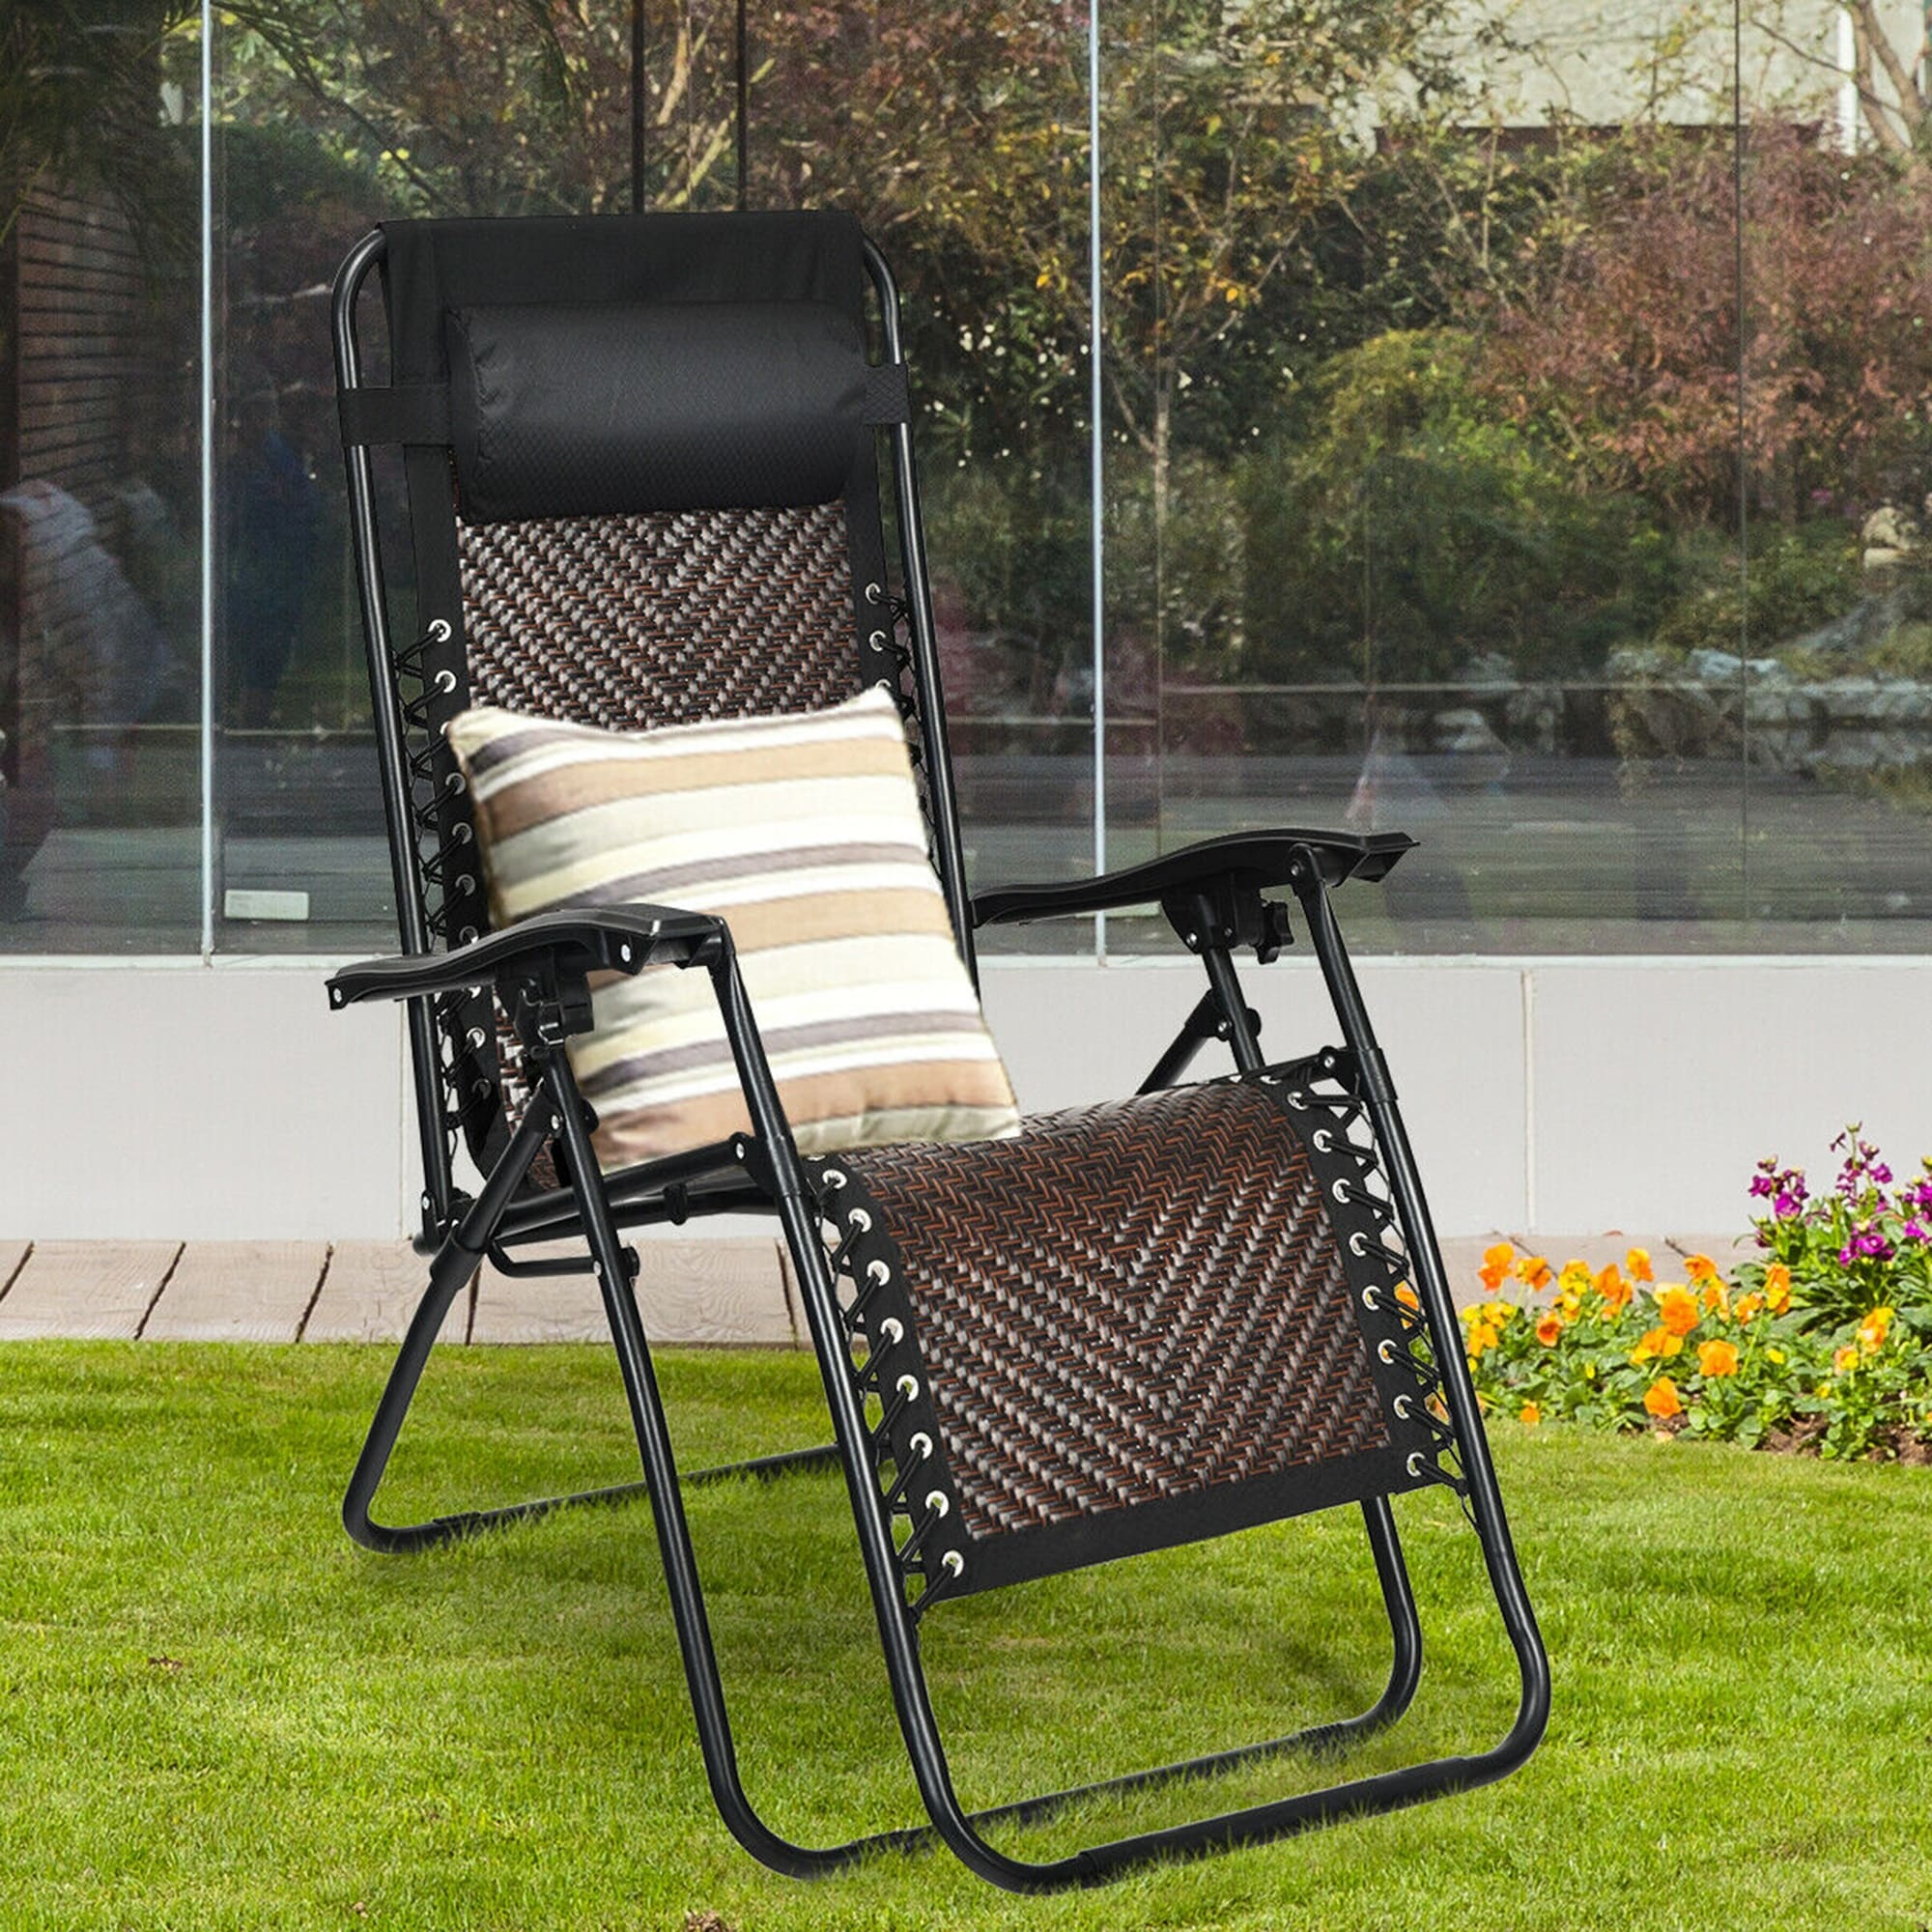 Gymax Wooden Chaise Lounge Chair Recliner Patio Outdoor W// Adjustable Backrest